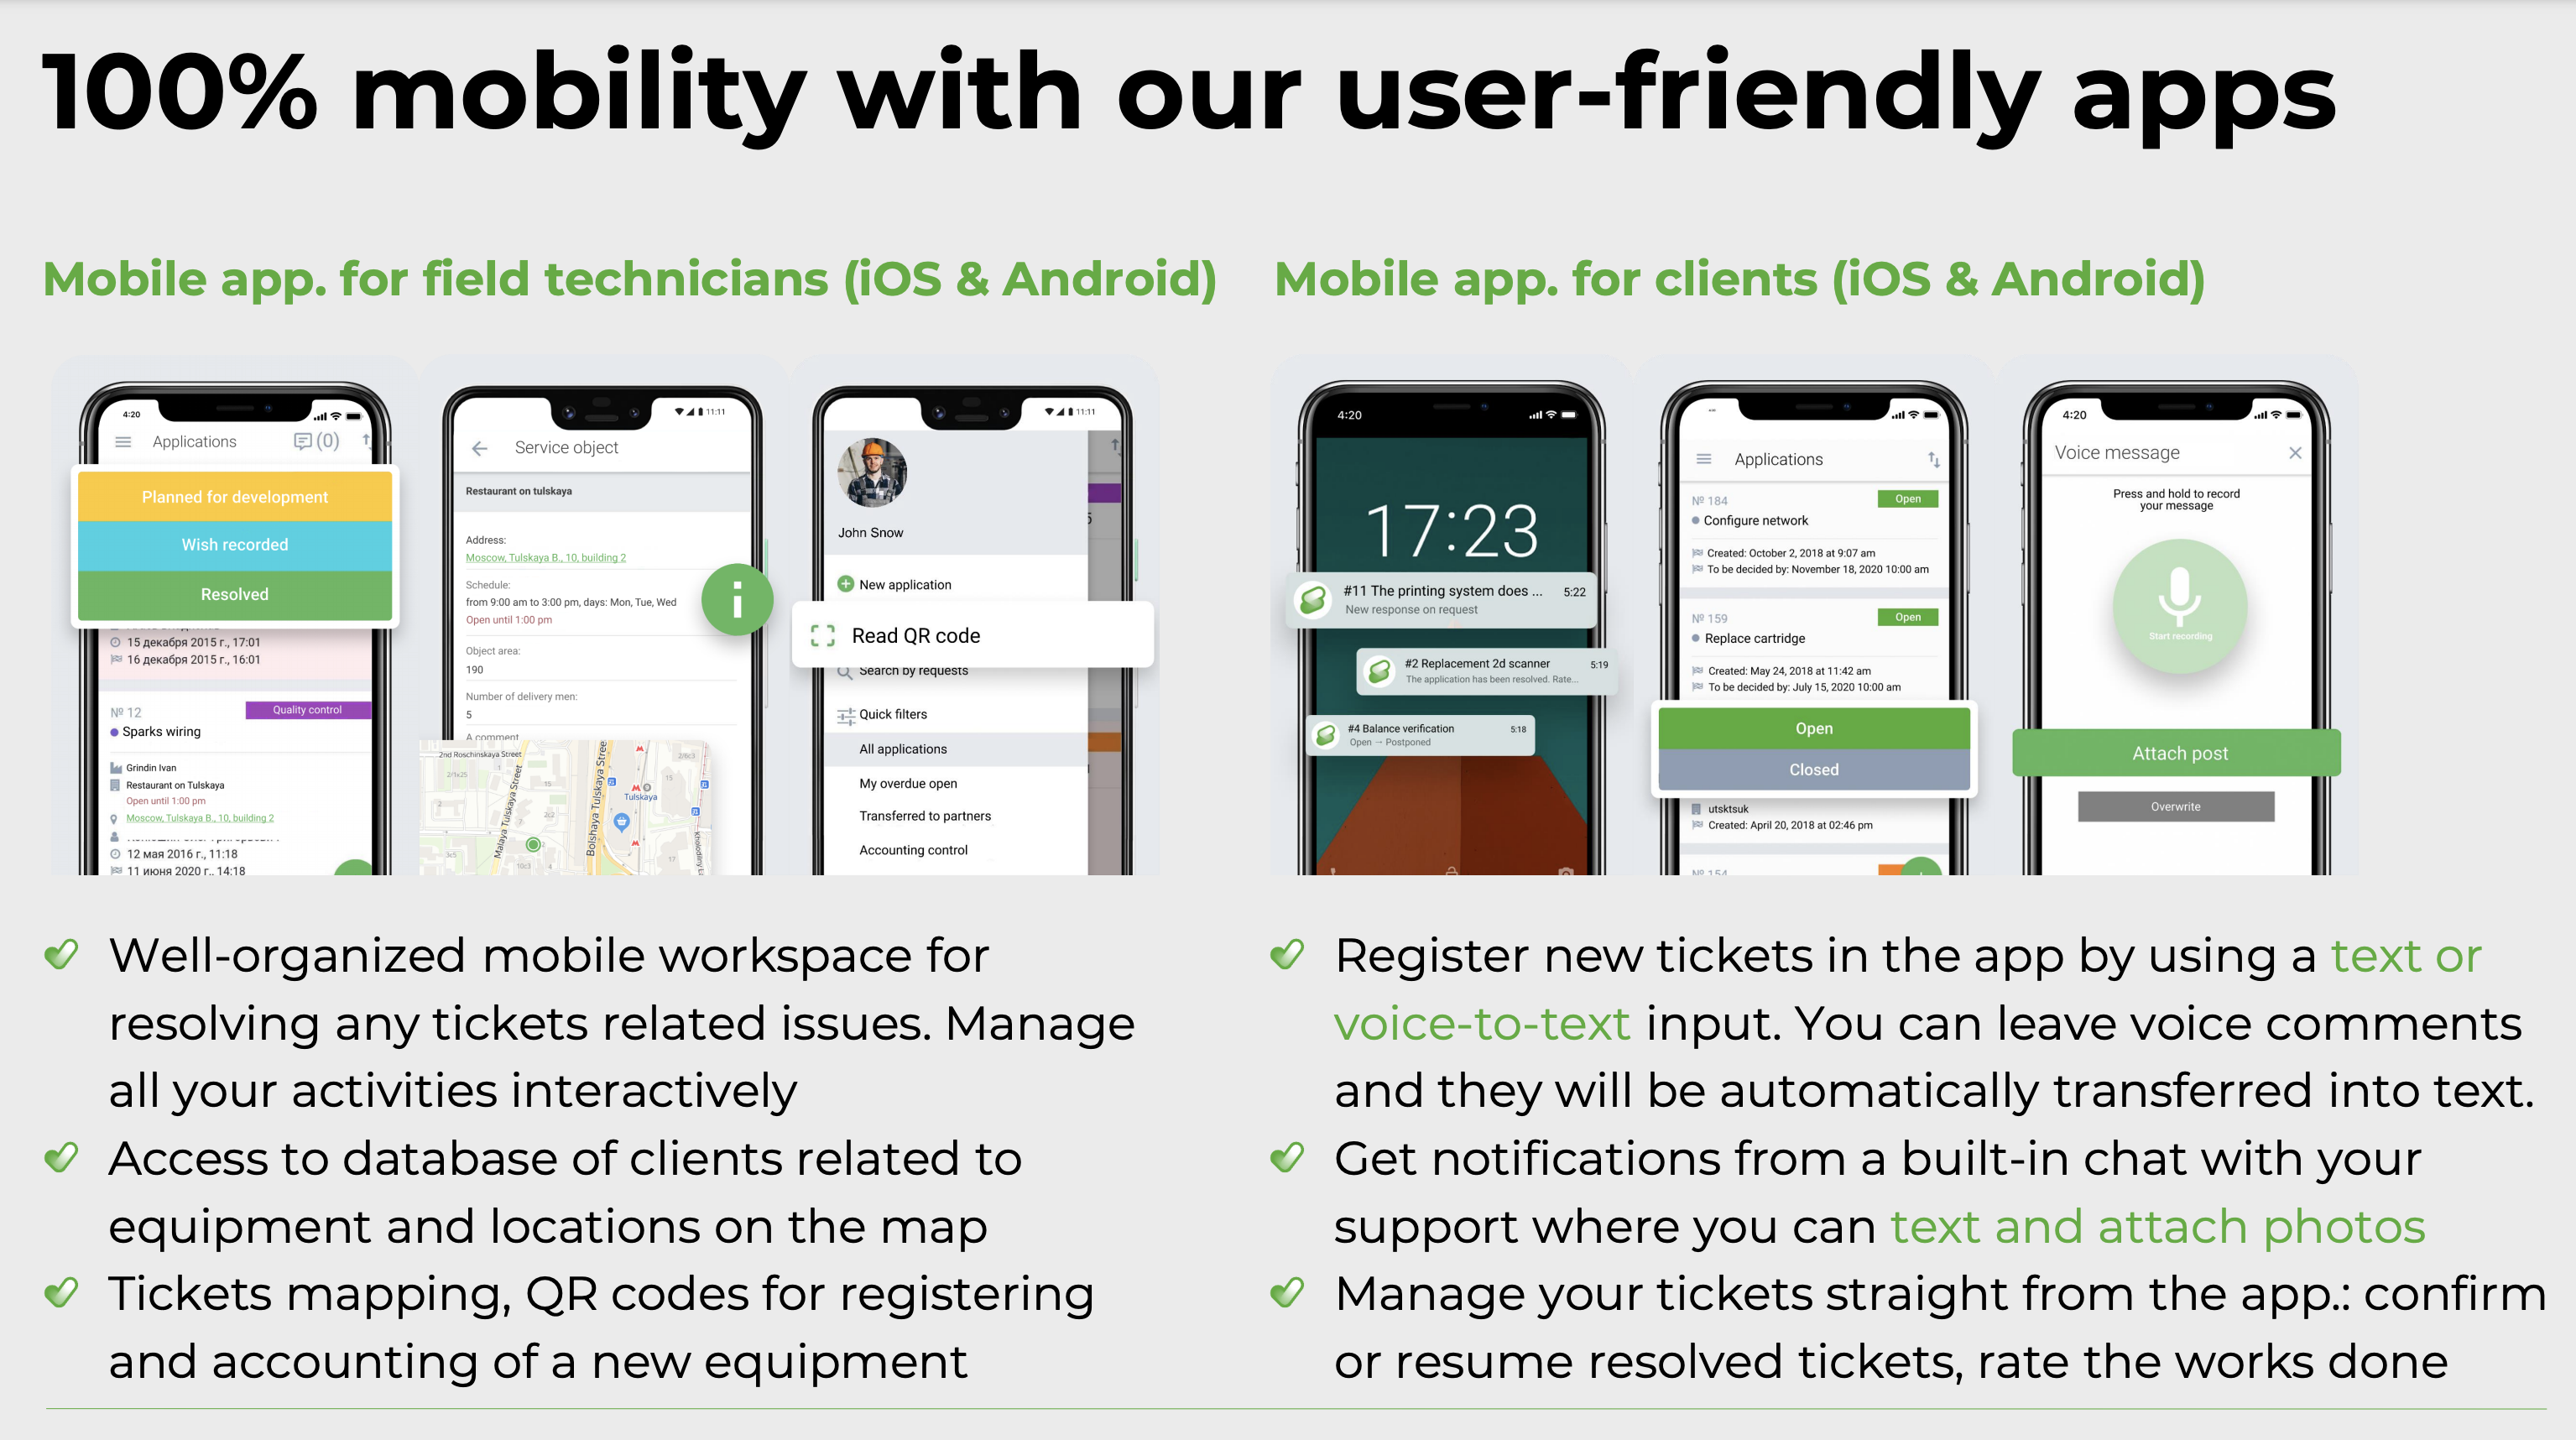 Mobile apps for technicians (iOS + Android) + Mobile apps for customers (iOS + Android).